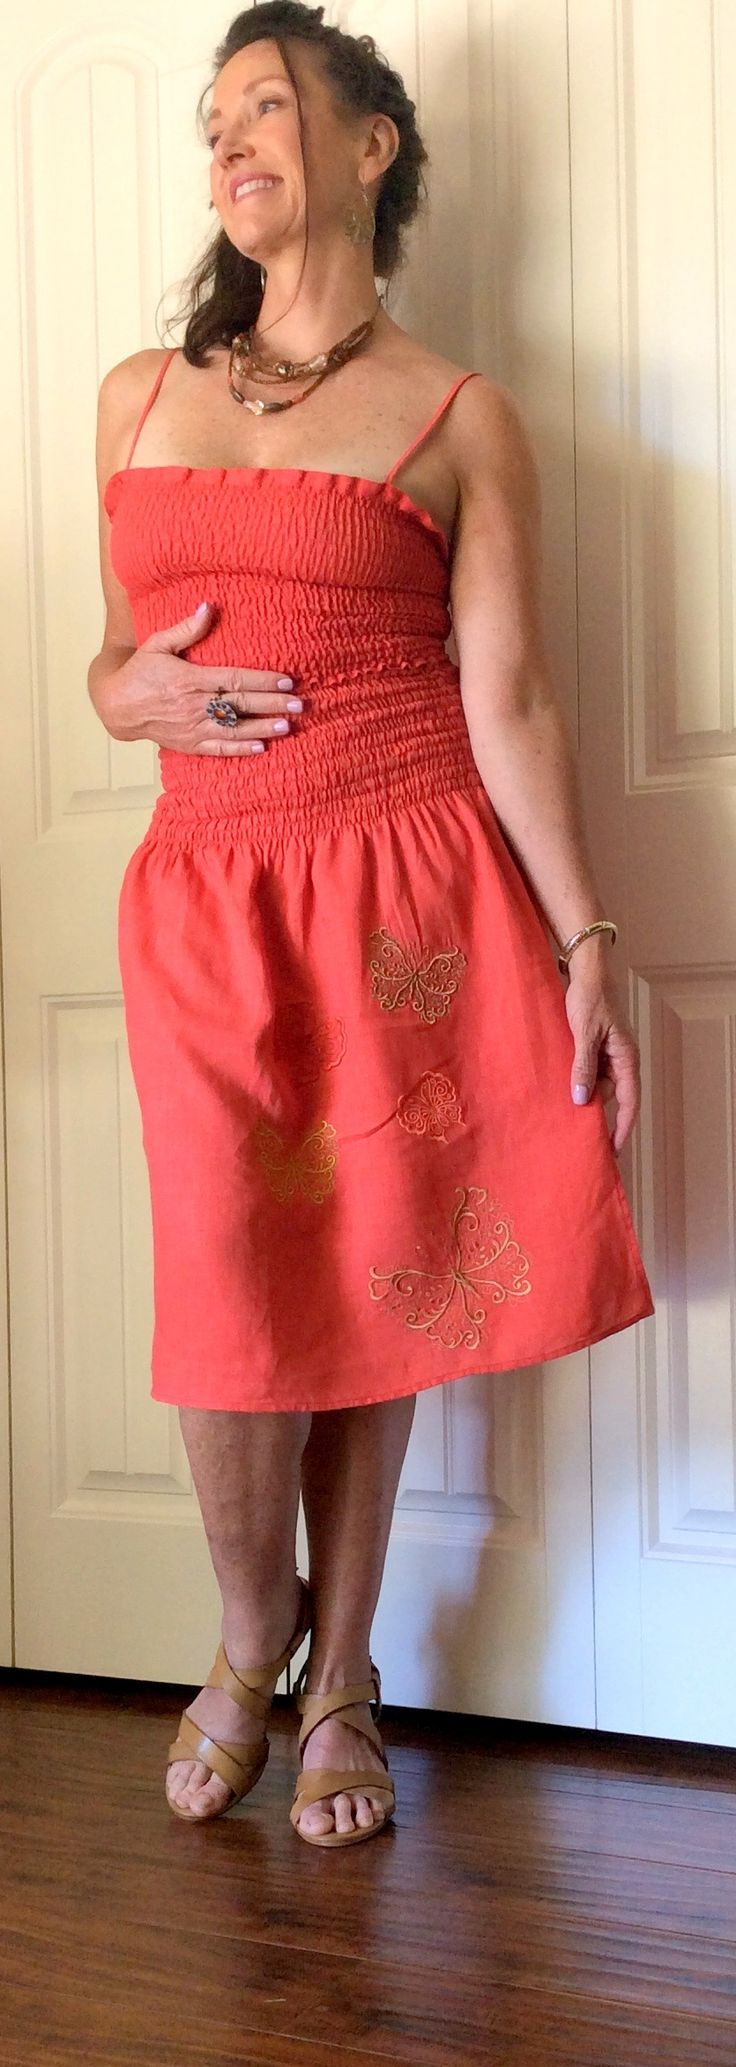 Two-Piece Embroidered Handkerchief Linen Set - Perfect for Vacay! kellkels.com